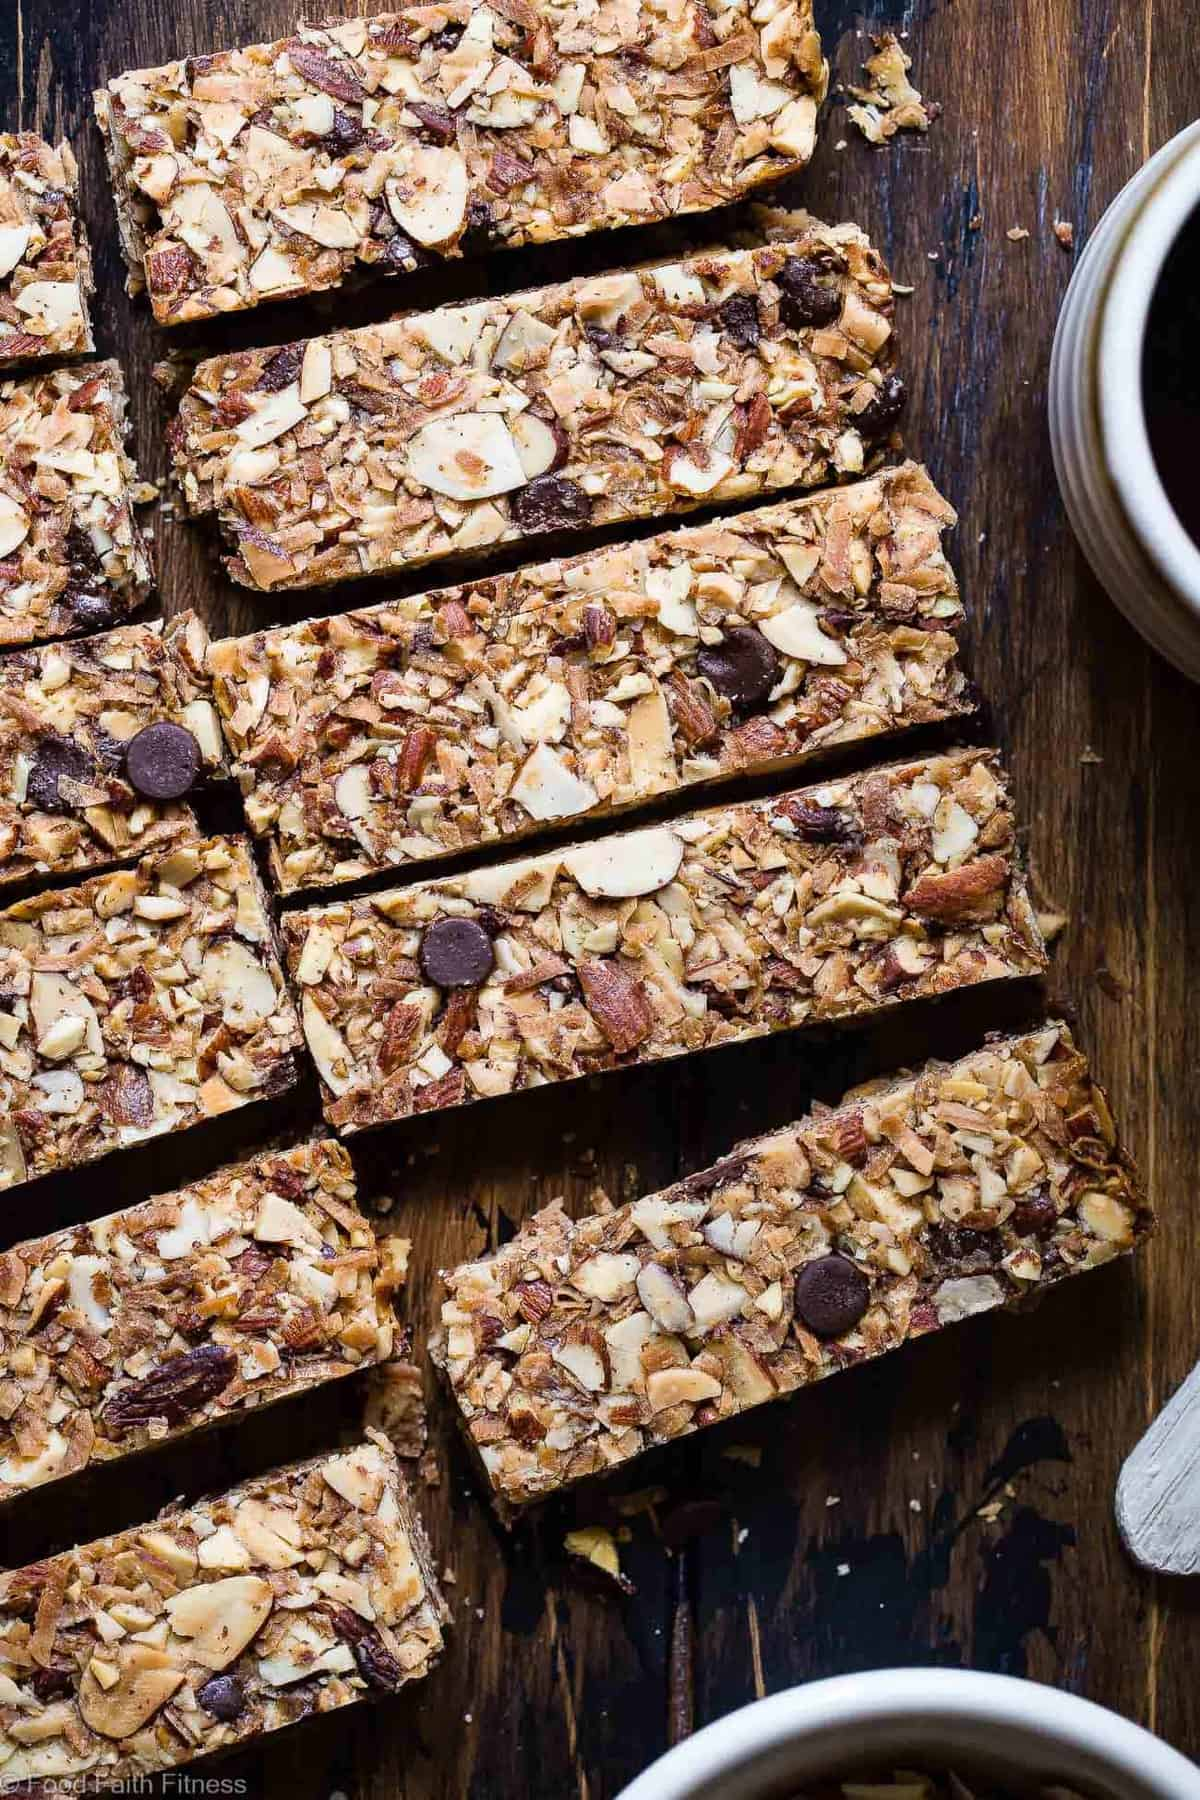 Keto Almond Joy Sugar Free Granola Bars - This low carb granola bars recipe is only 7 simple ingredients and tastes like an Almond Joy! Kids or adults will LOVE these healthy homemade granola bars and they're portable and freeze great too! | #Foodfaithfitness | #Keto #Glutenfree #Paleo #Dairyfree #Sugarfree